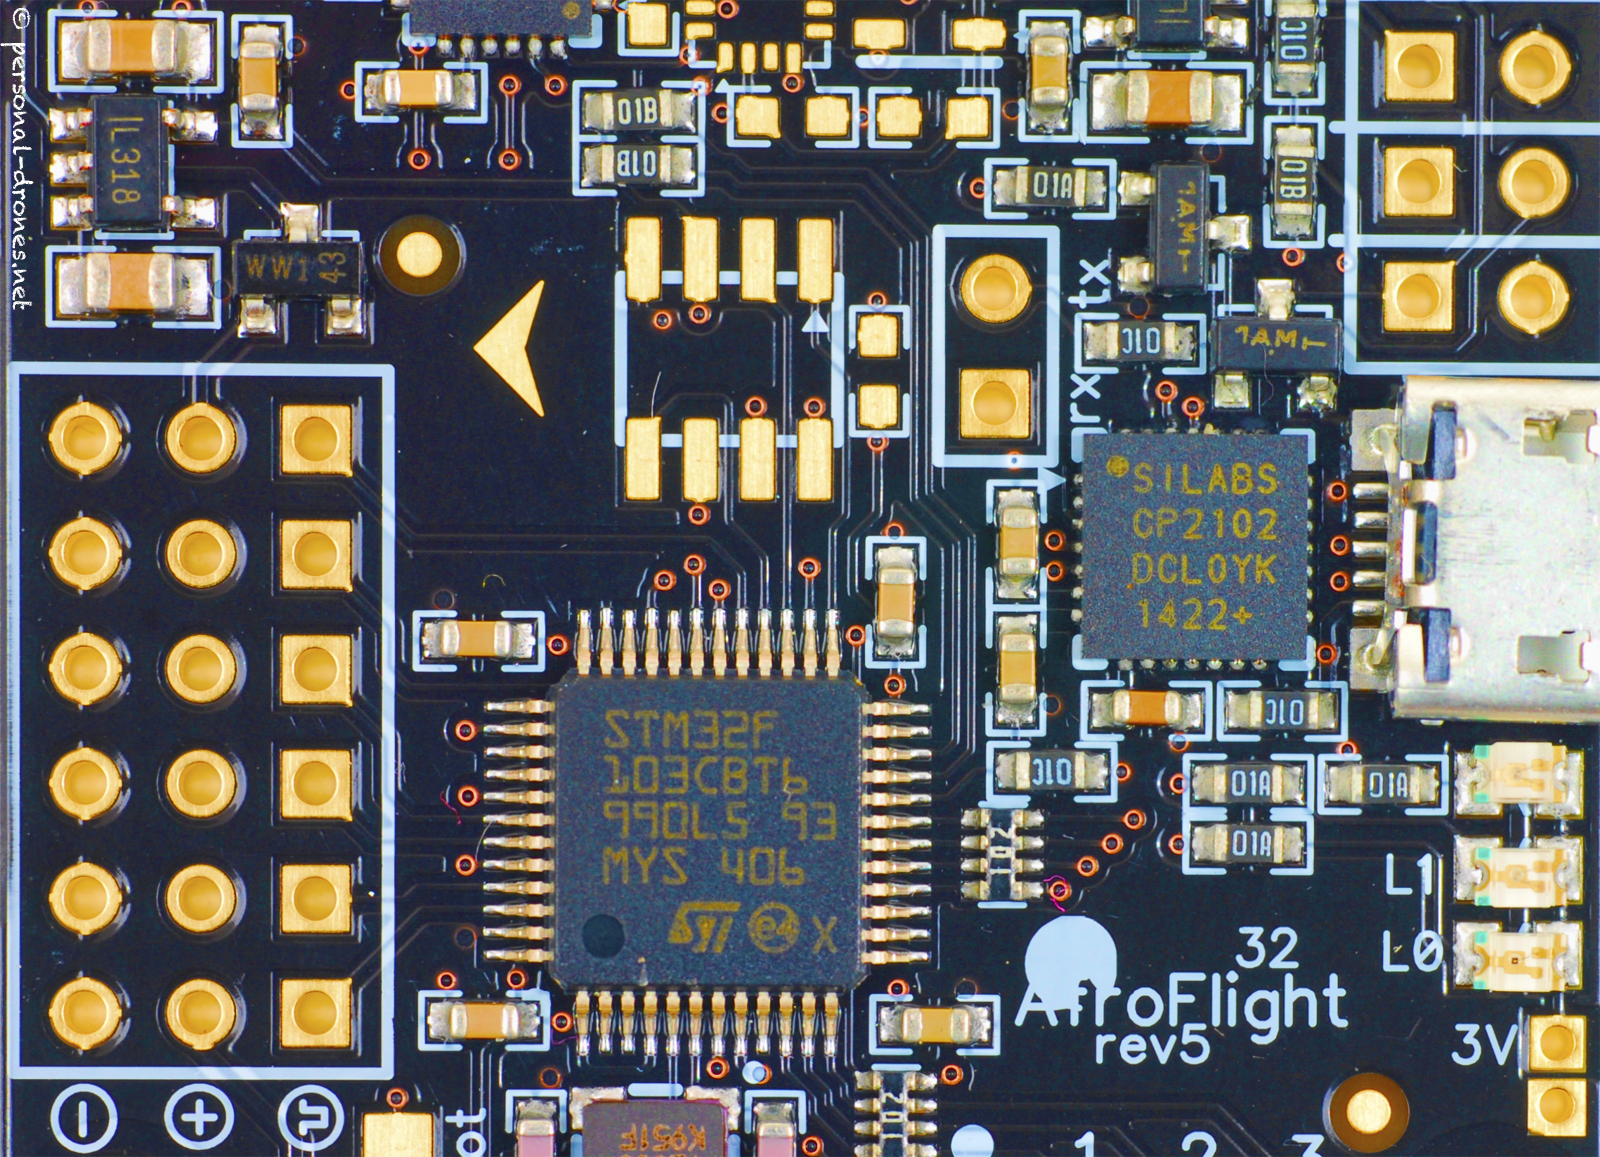 acro naze 32 flight control board images personal drones  acro naze 32 rev5 flight control board black edition close up